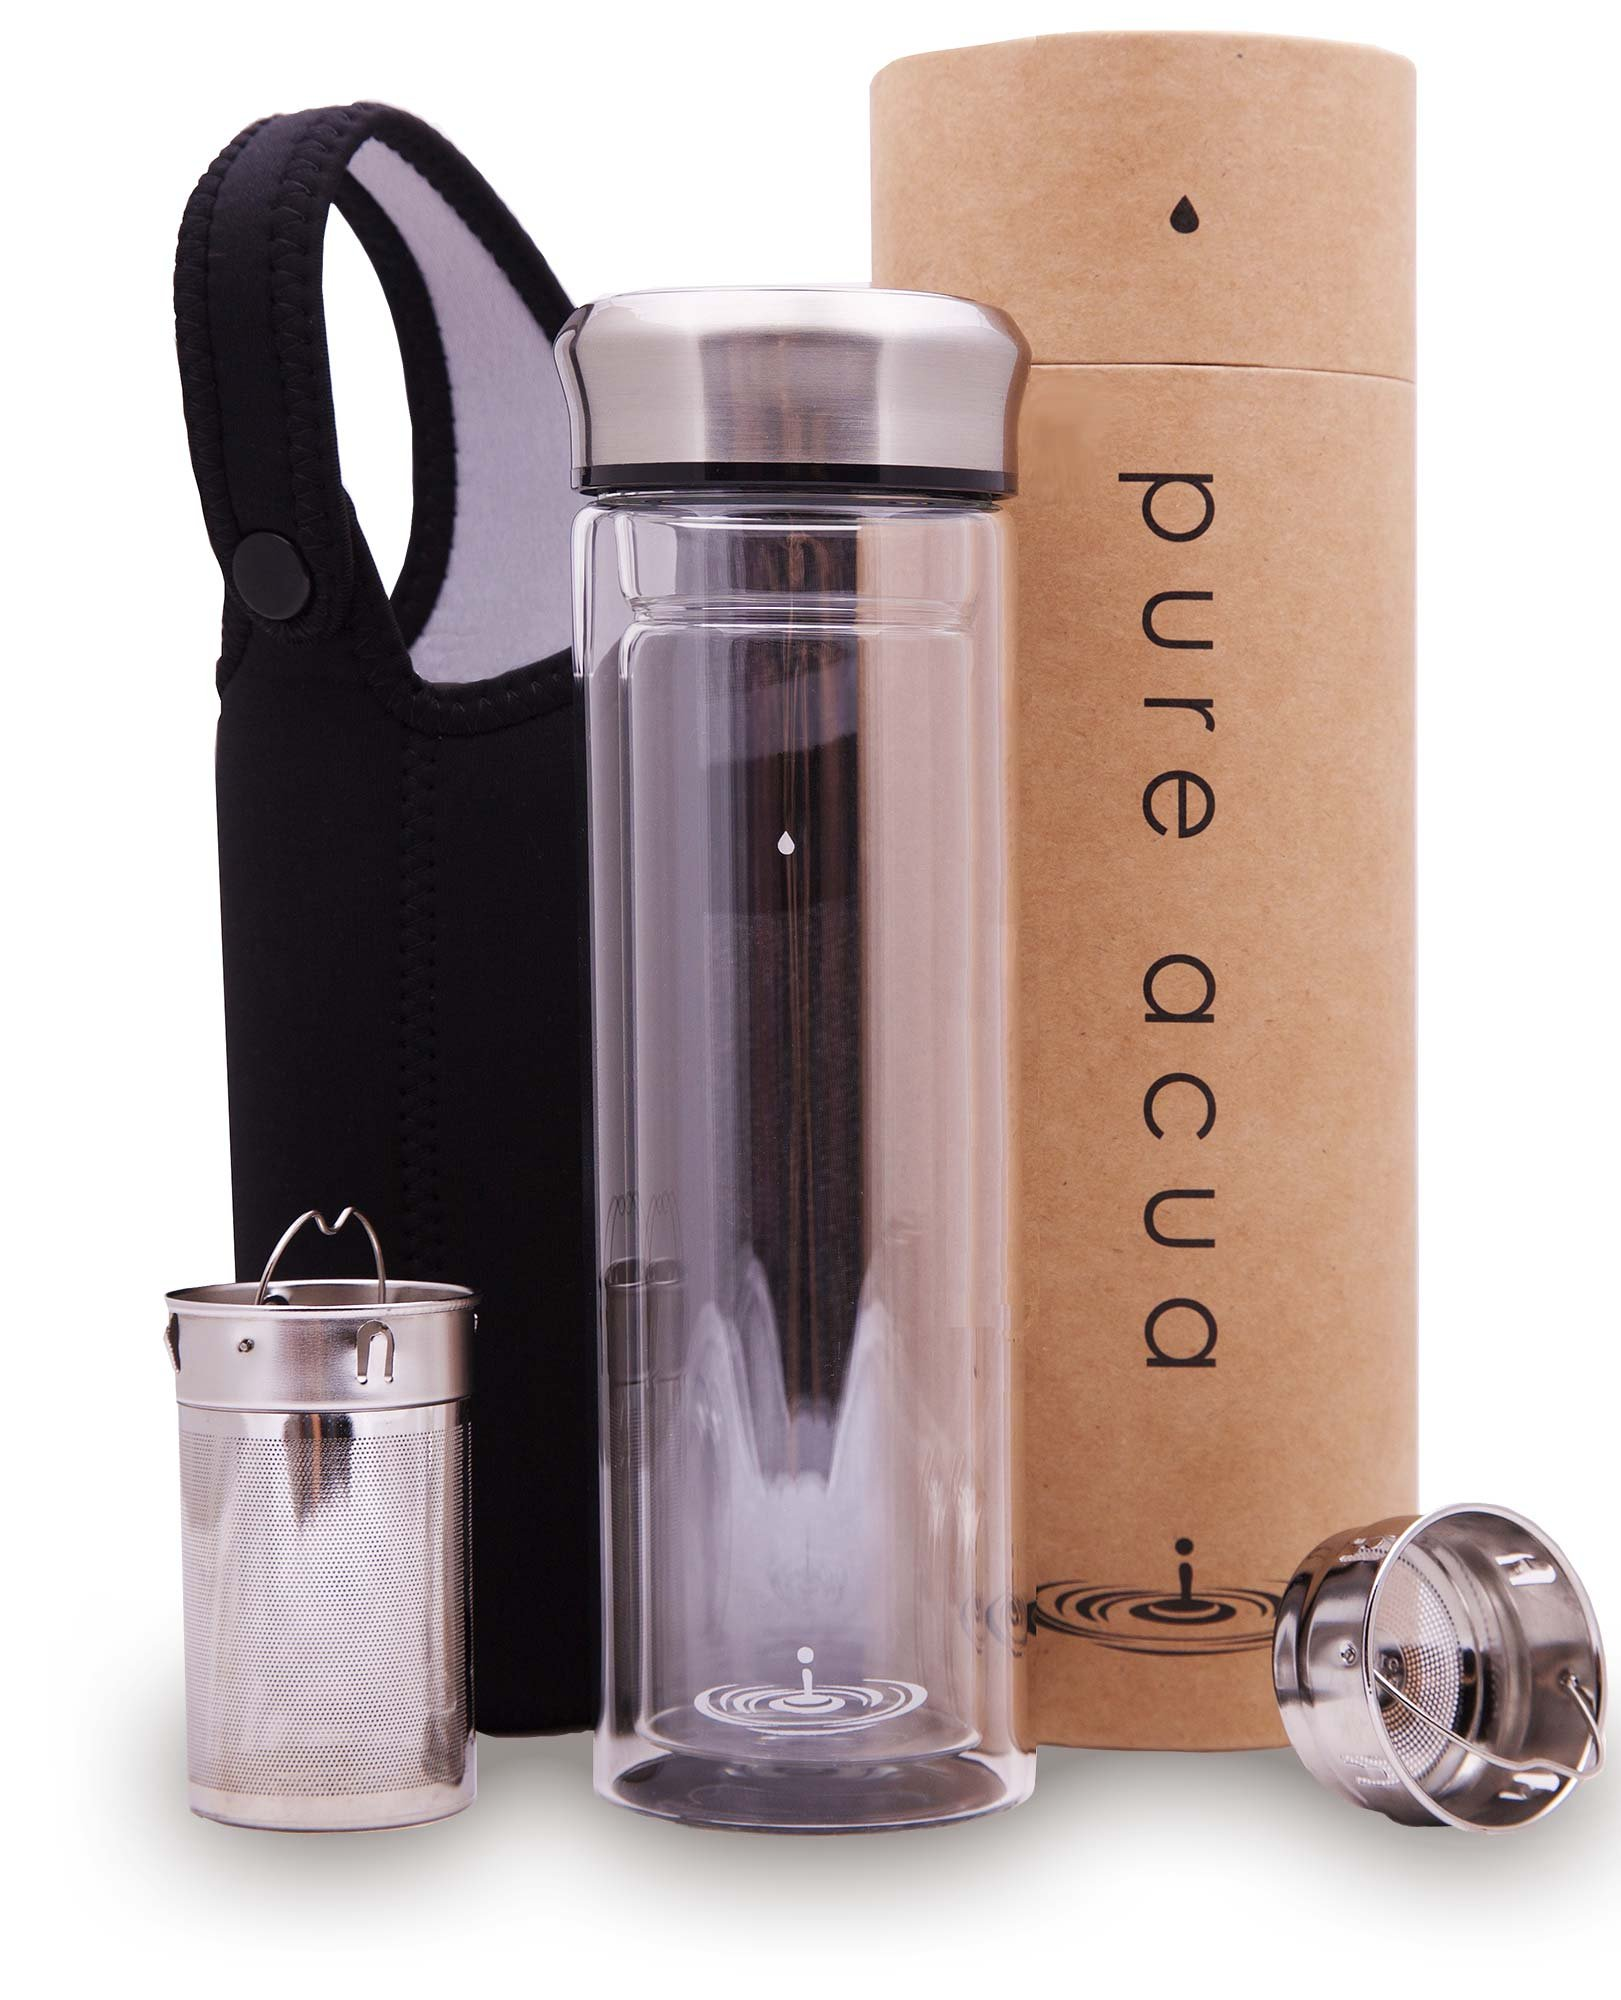 PURE ACUA Double Wall Insulated Glass Bottle-Travel Teapot comes with Two Highest Quality Stainless Steel Filters and a Carrying Sleeve. Perfect for Large or Small Leaf Teas, and Fruit Water